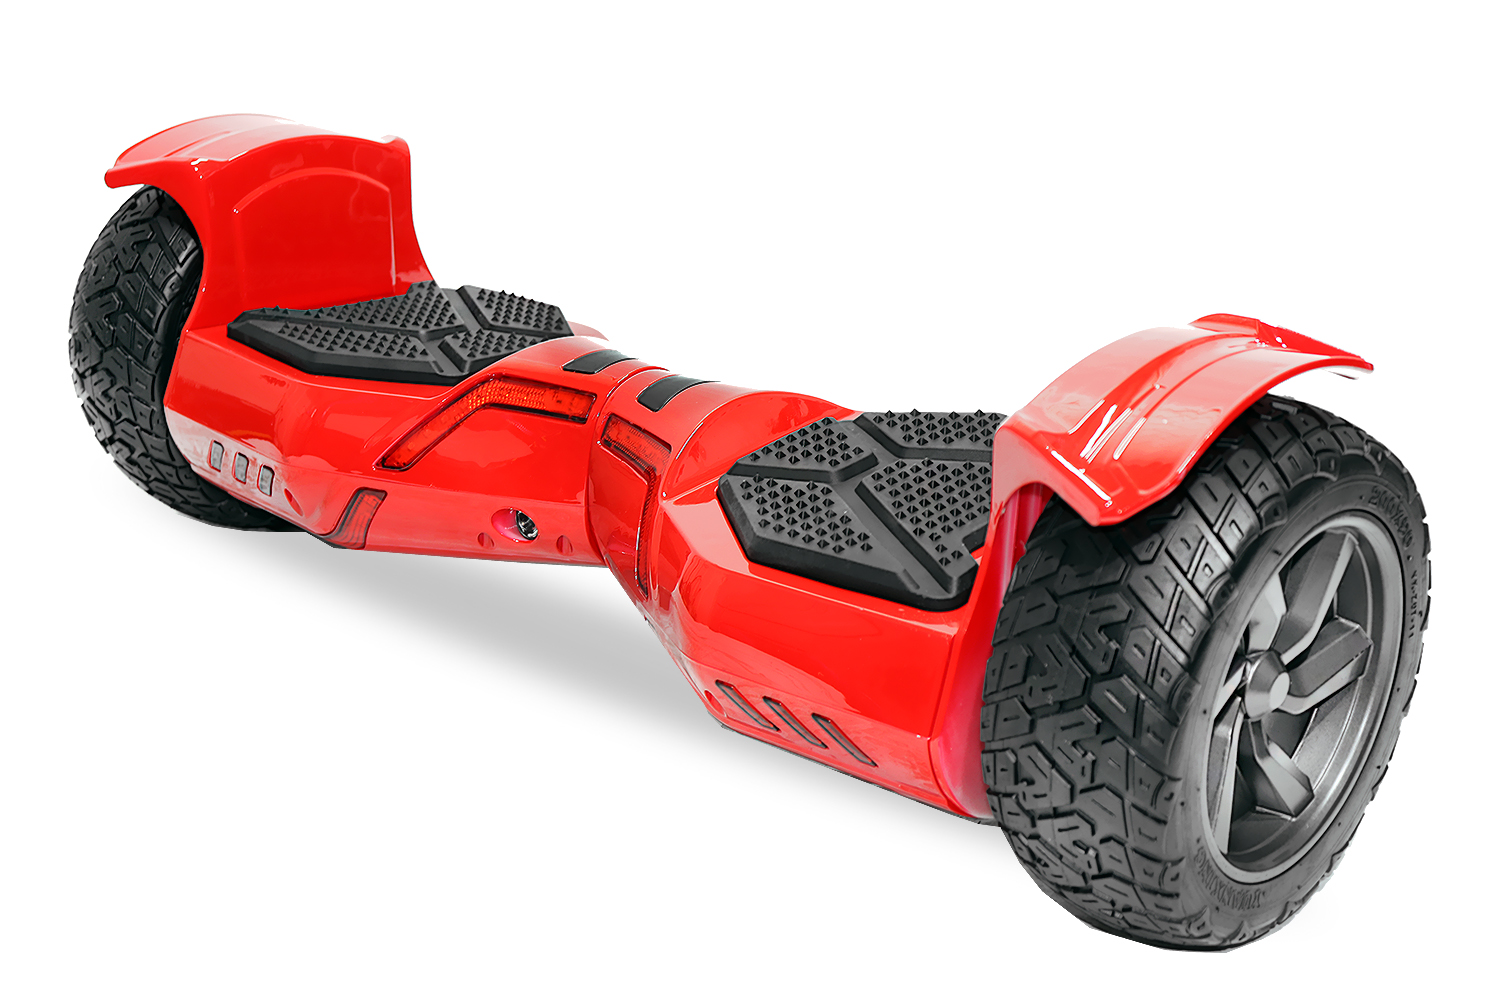 kidcars kinder elektroautos mit akku 2x 350w smarty hoverboard 8 5 zoll casablanca. Black Bedroom Furniture Sets. Home Design Ideas